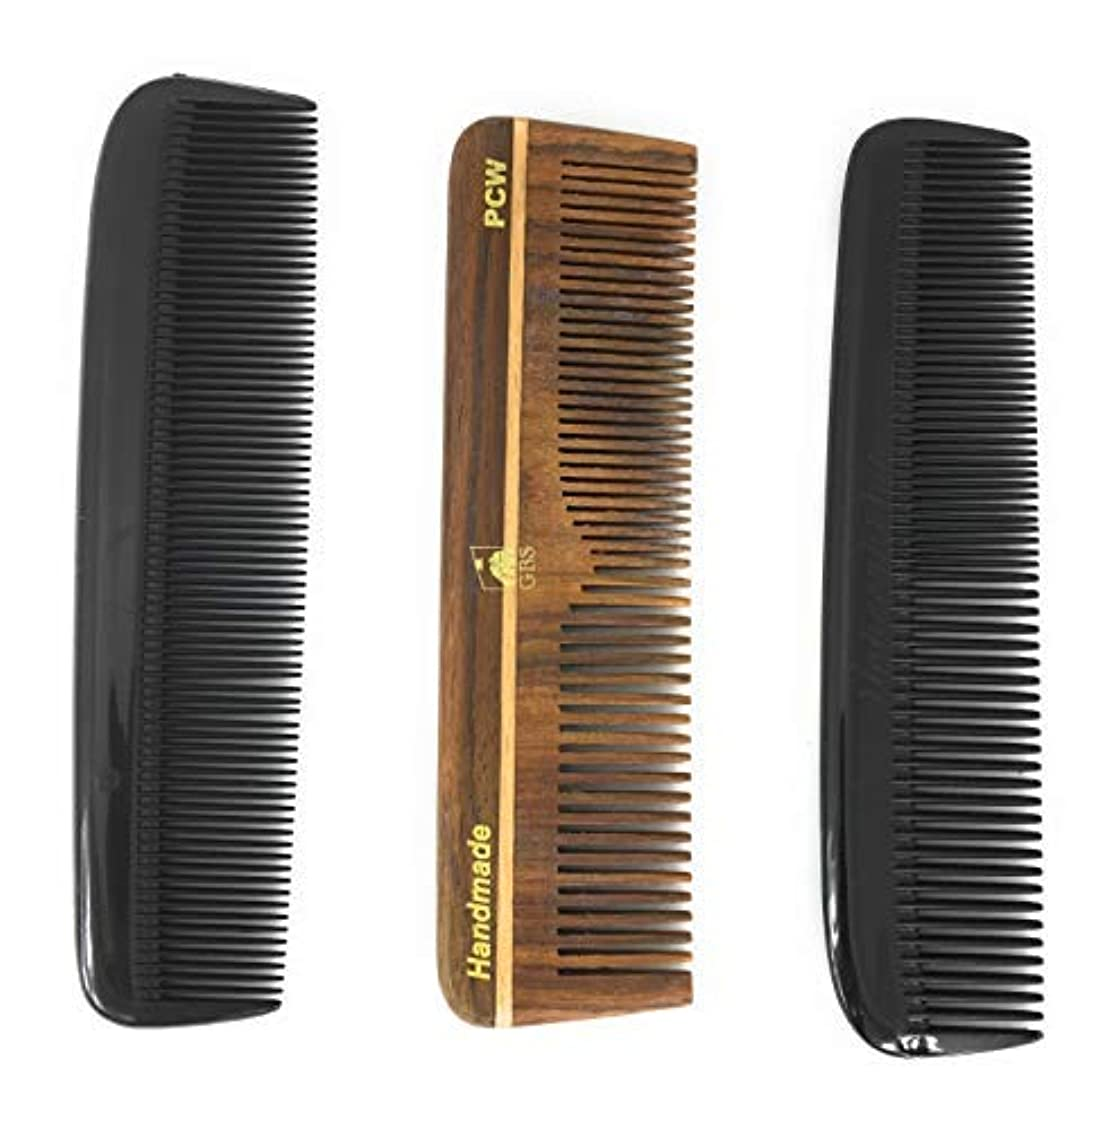 GBS Hair Comb Variety 3 pack - 5